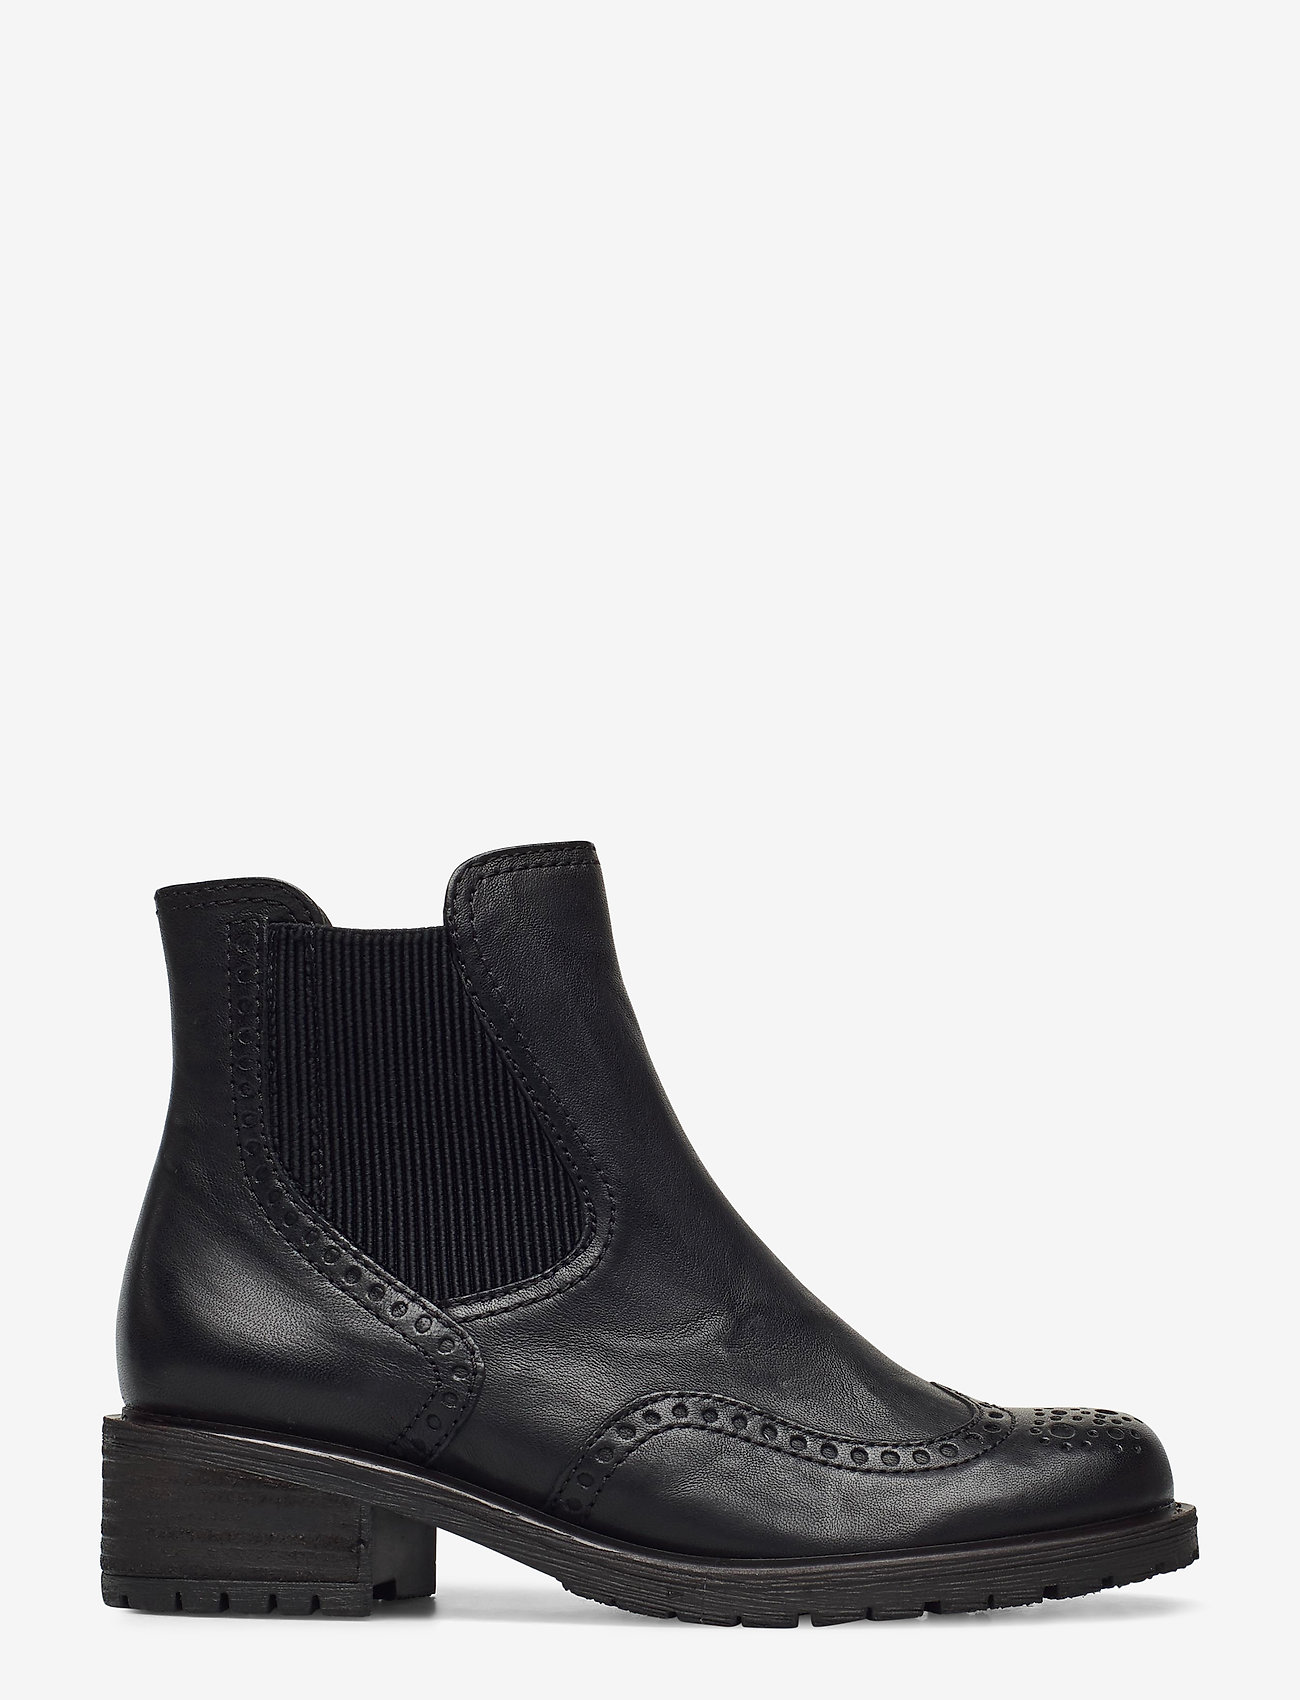 Gabor - Ankle boot - flat ankle boots - black - 1